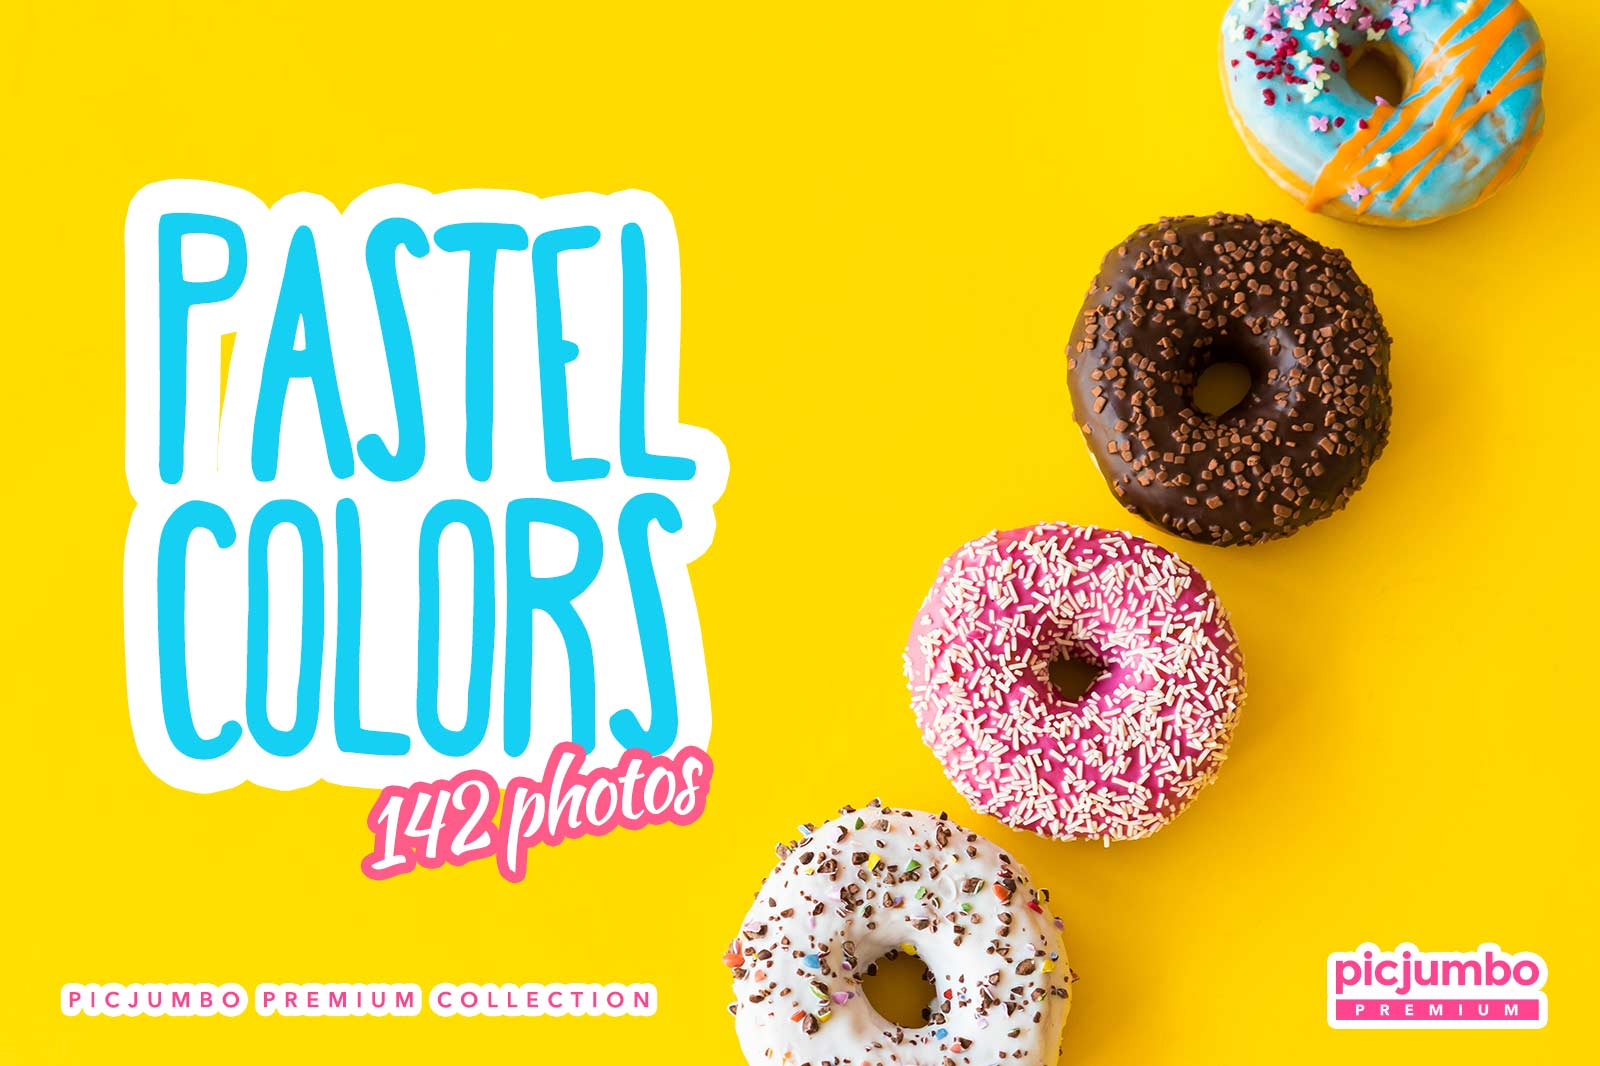 Pastel Colors — get it now in picjumbo PREMIUM!